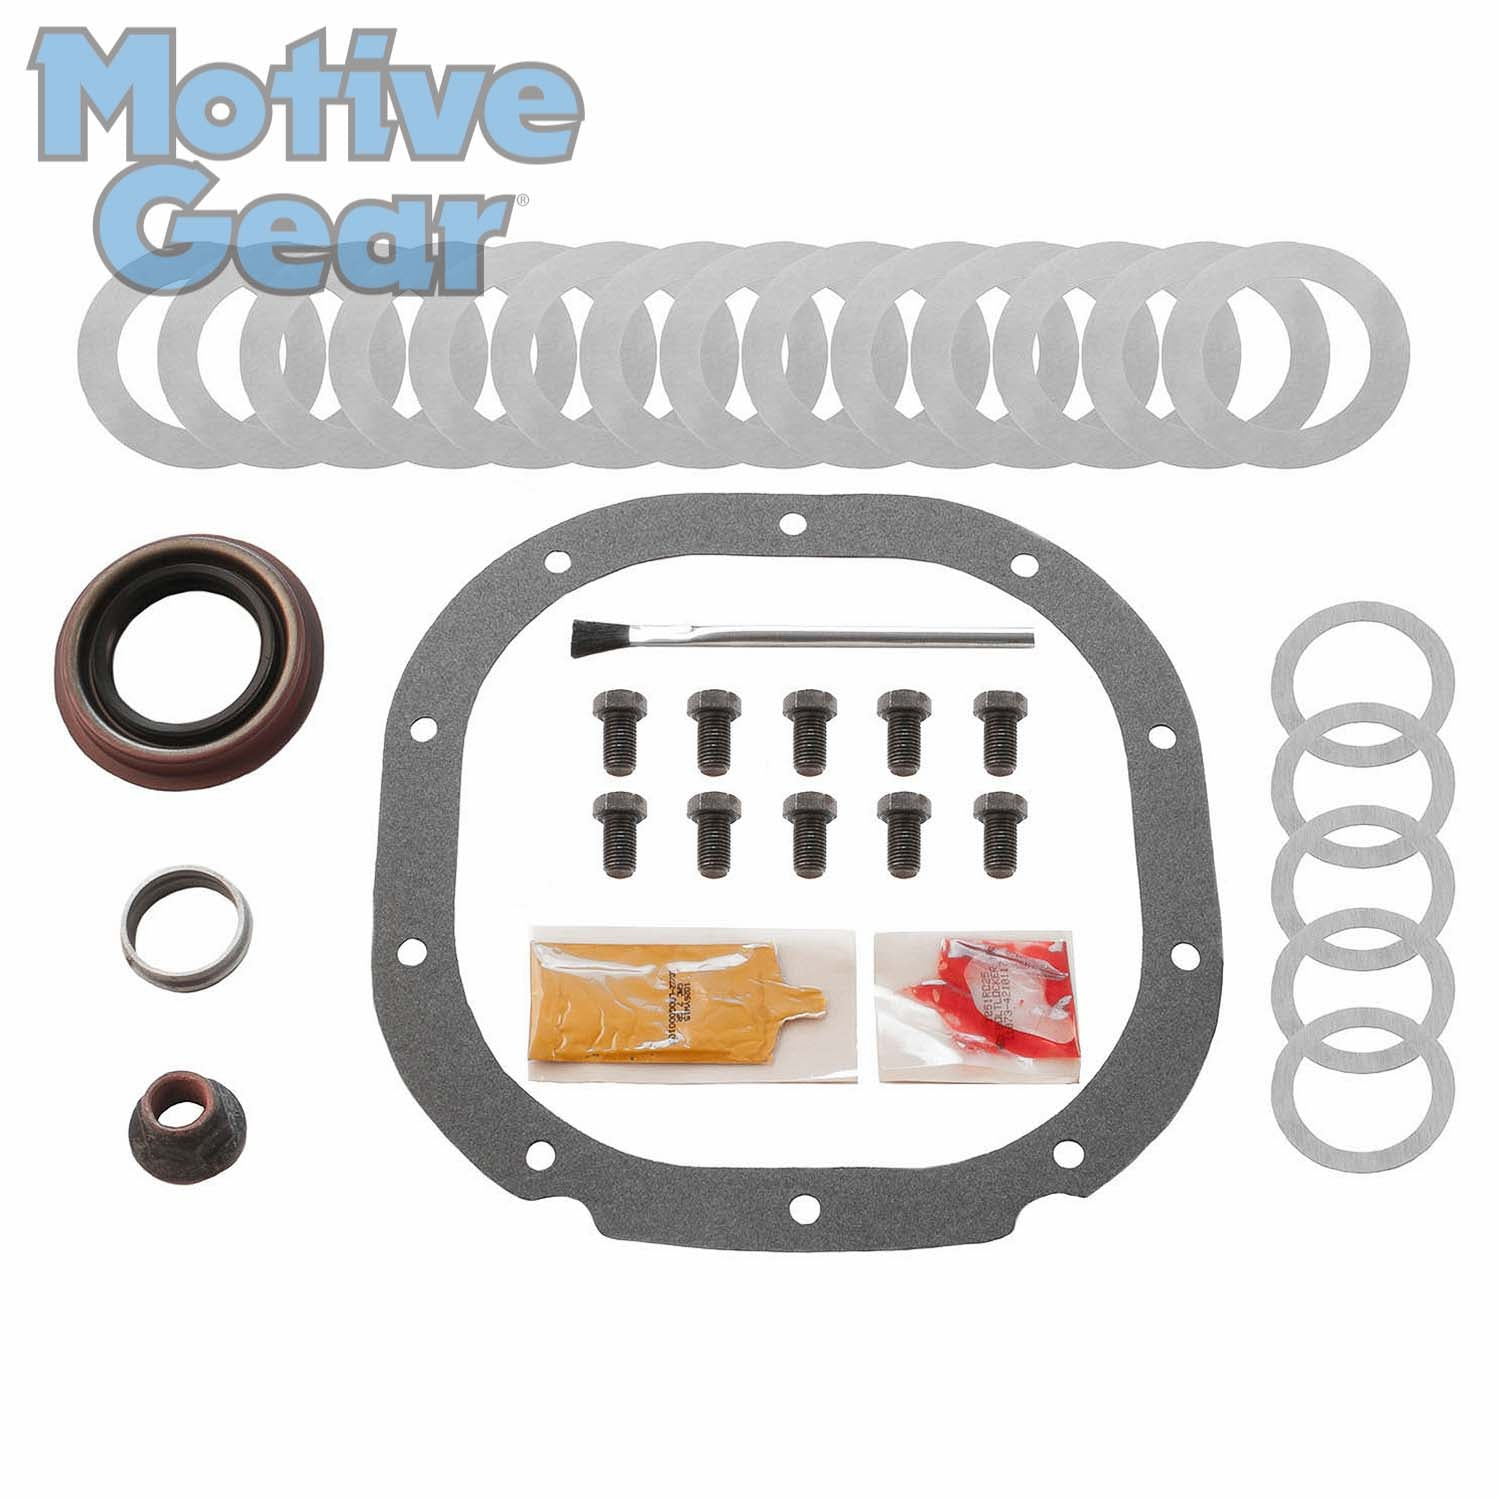 Ford 8.8 inch 10 Bolt Motive Gear Master Install Kit